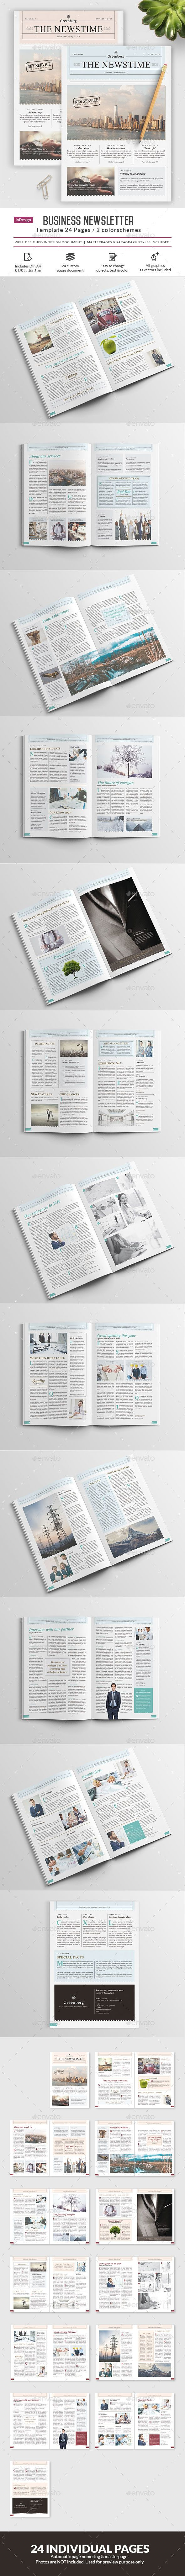 Business Newsletter   24 Pages   Newsletters Print Templates